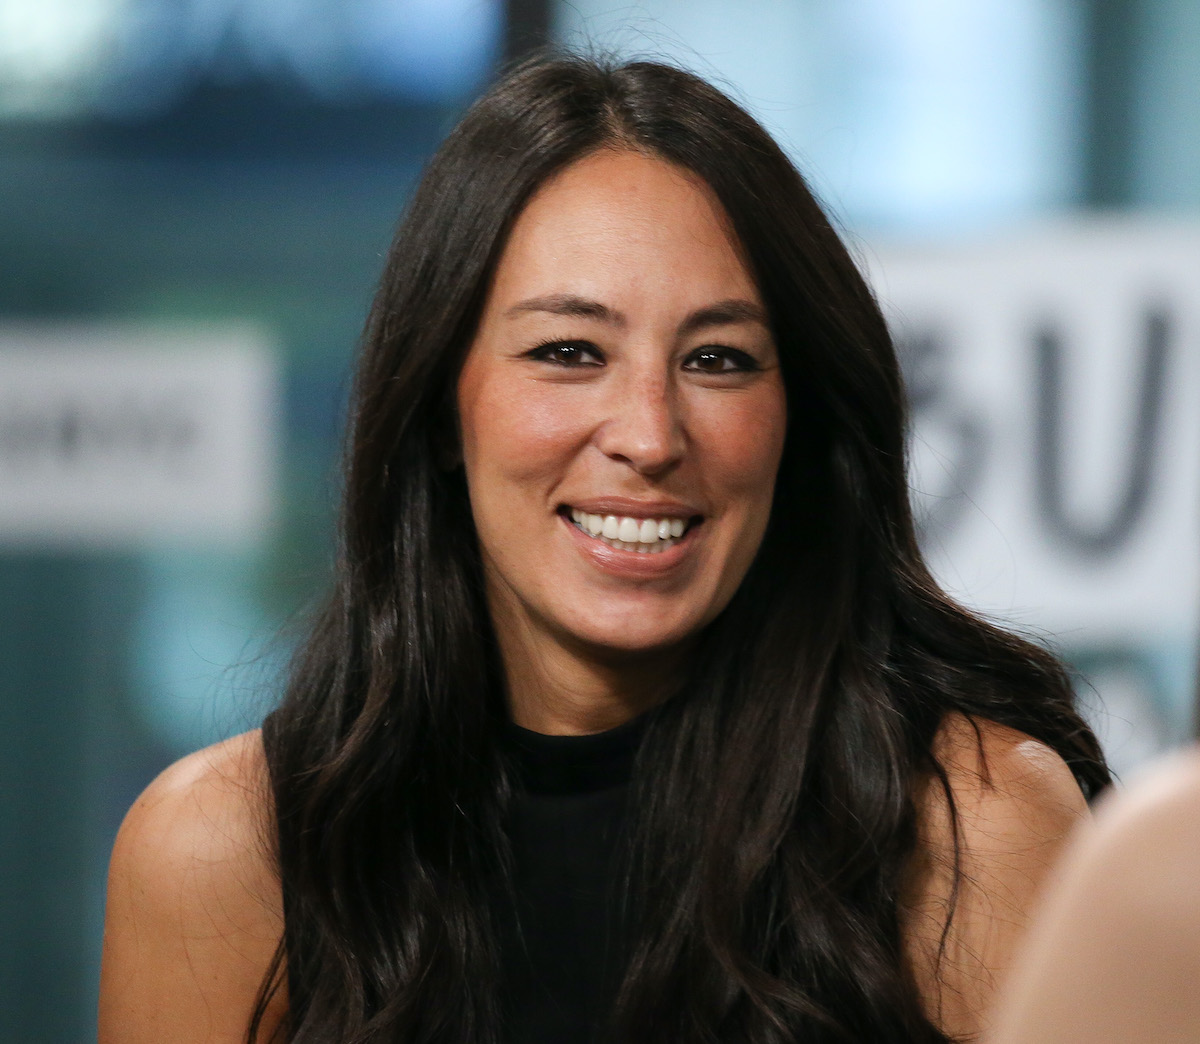 Joanna Gaines attends the BUILD event in New York City